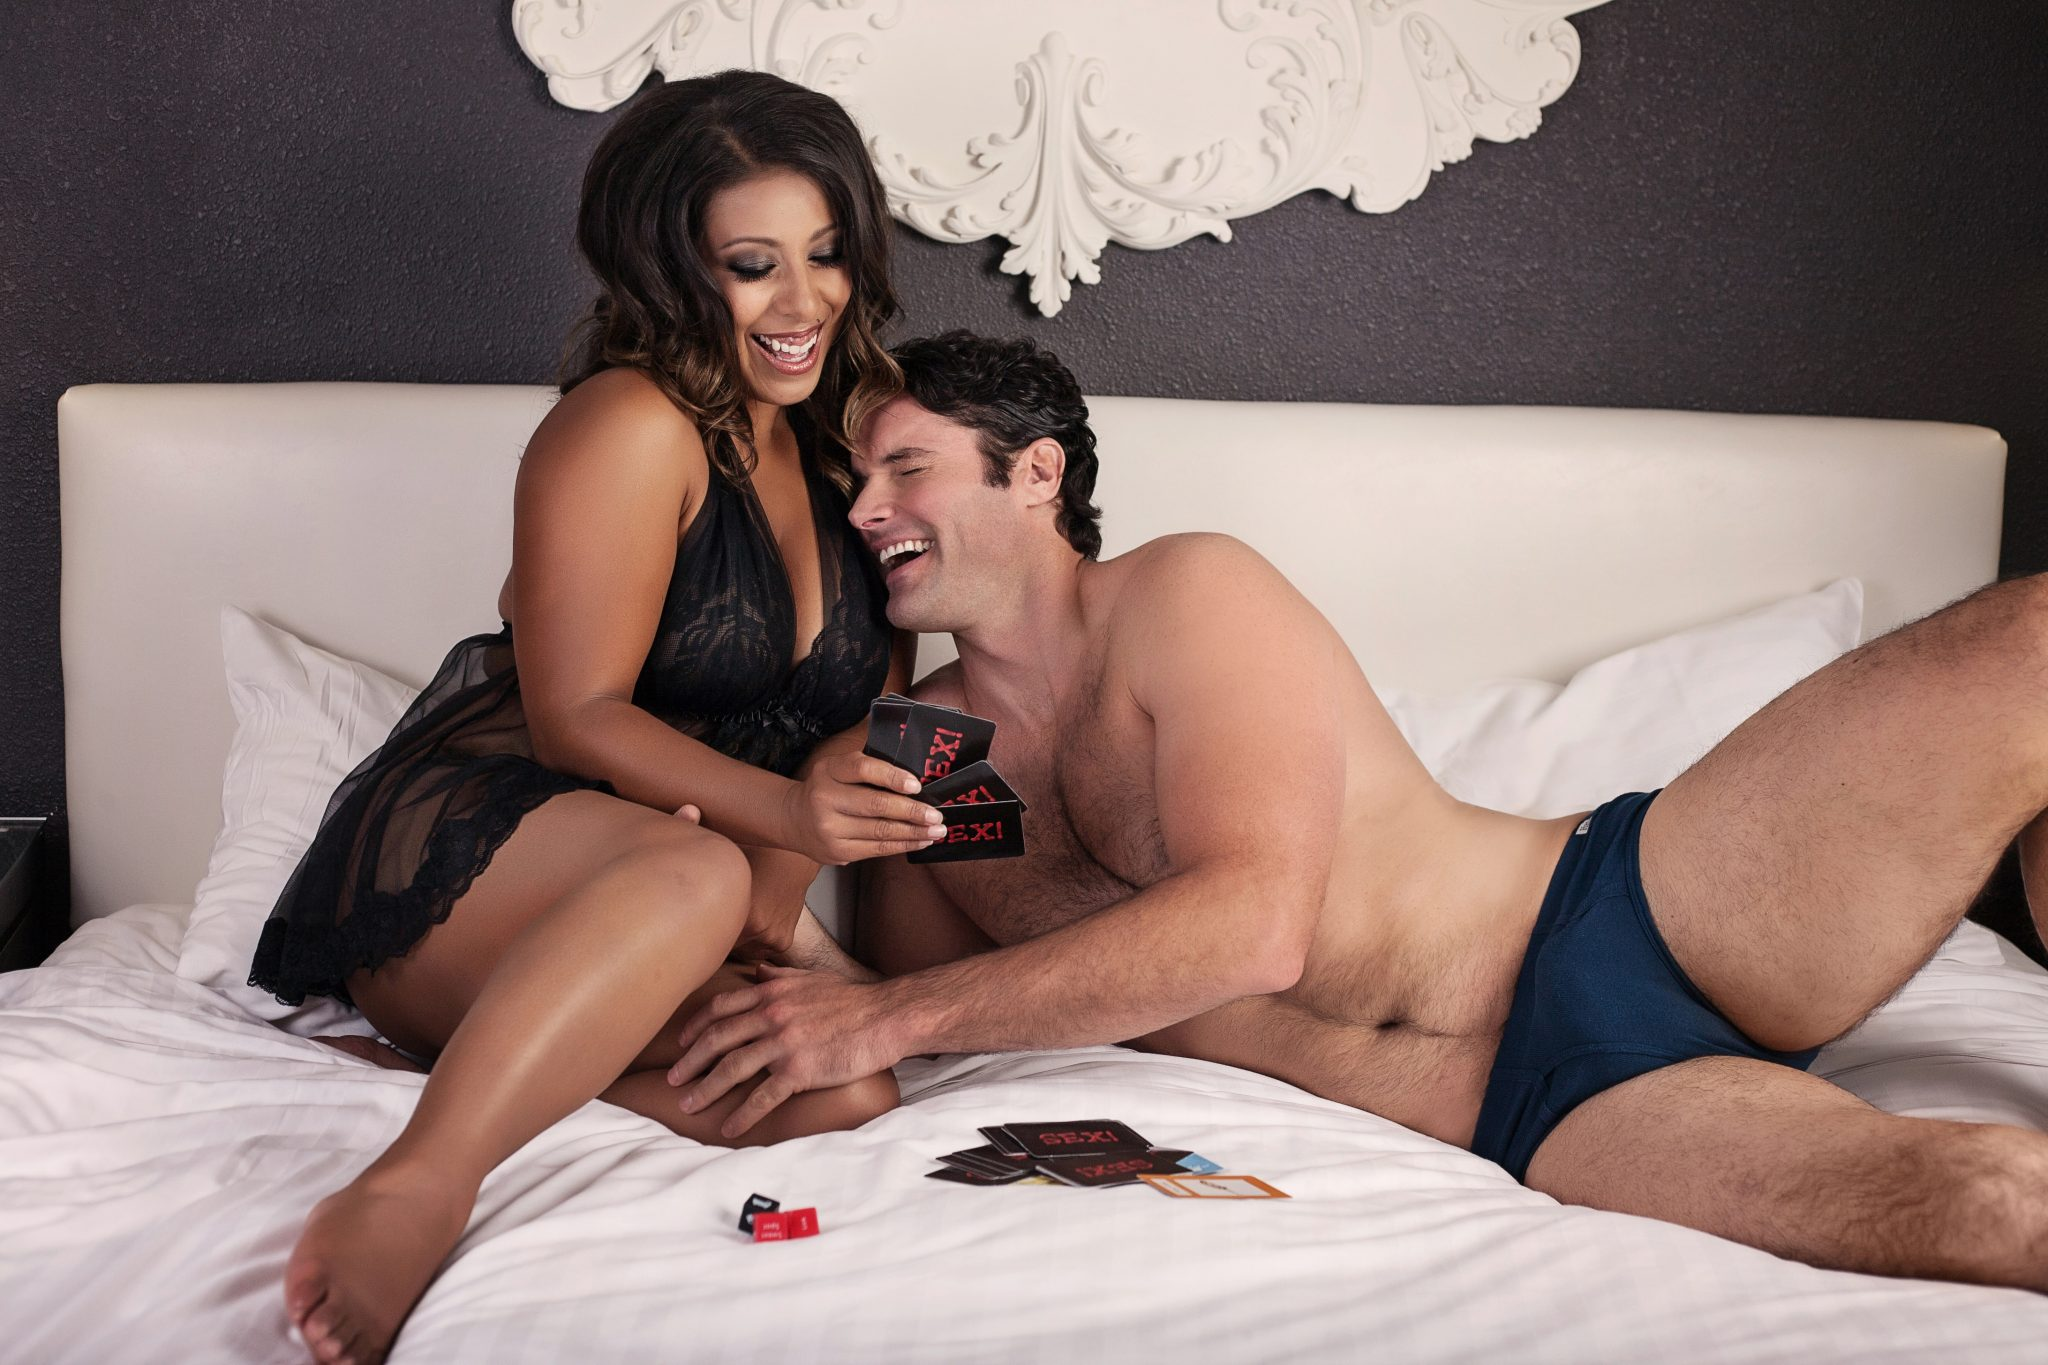 Couple having fun at boudoir photography shoot in Vegas.